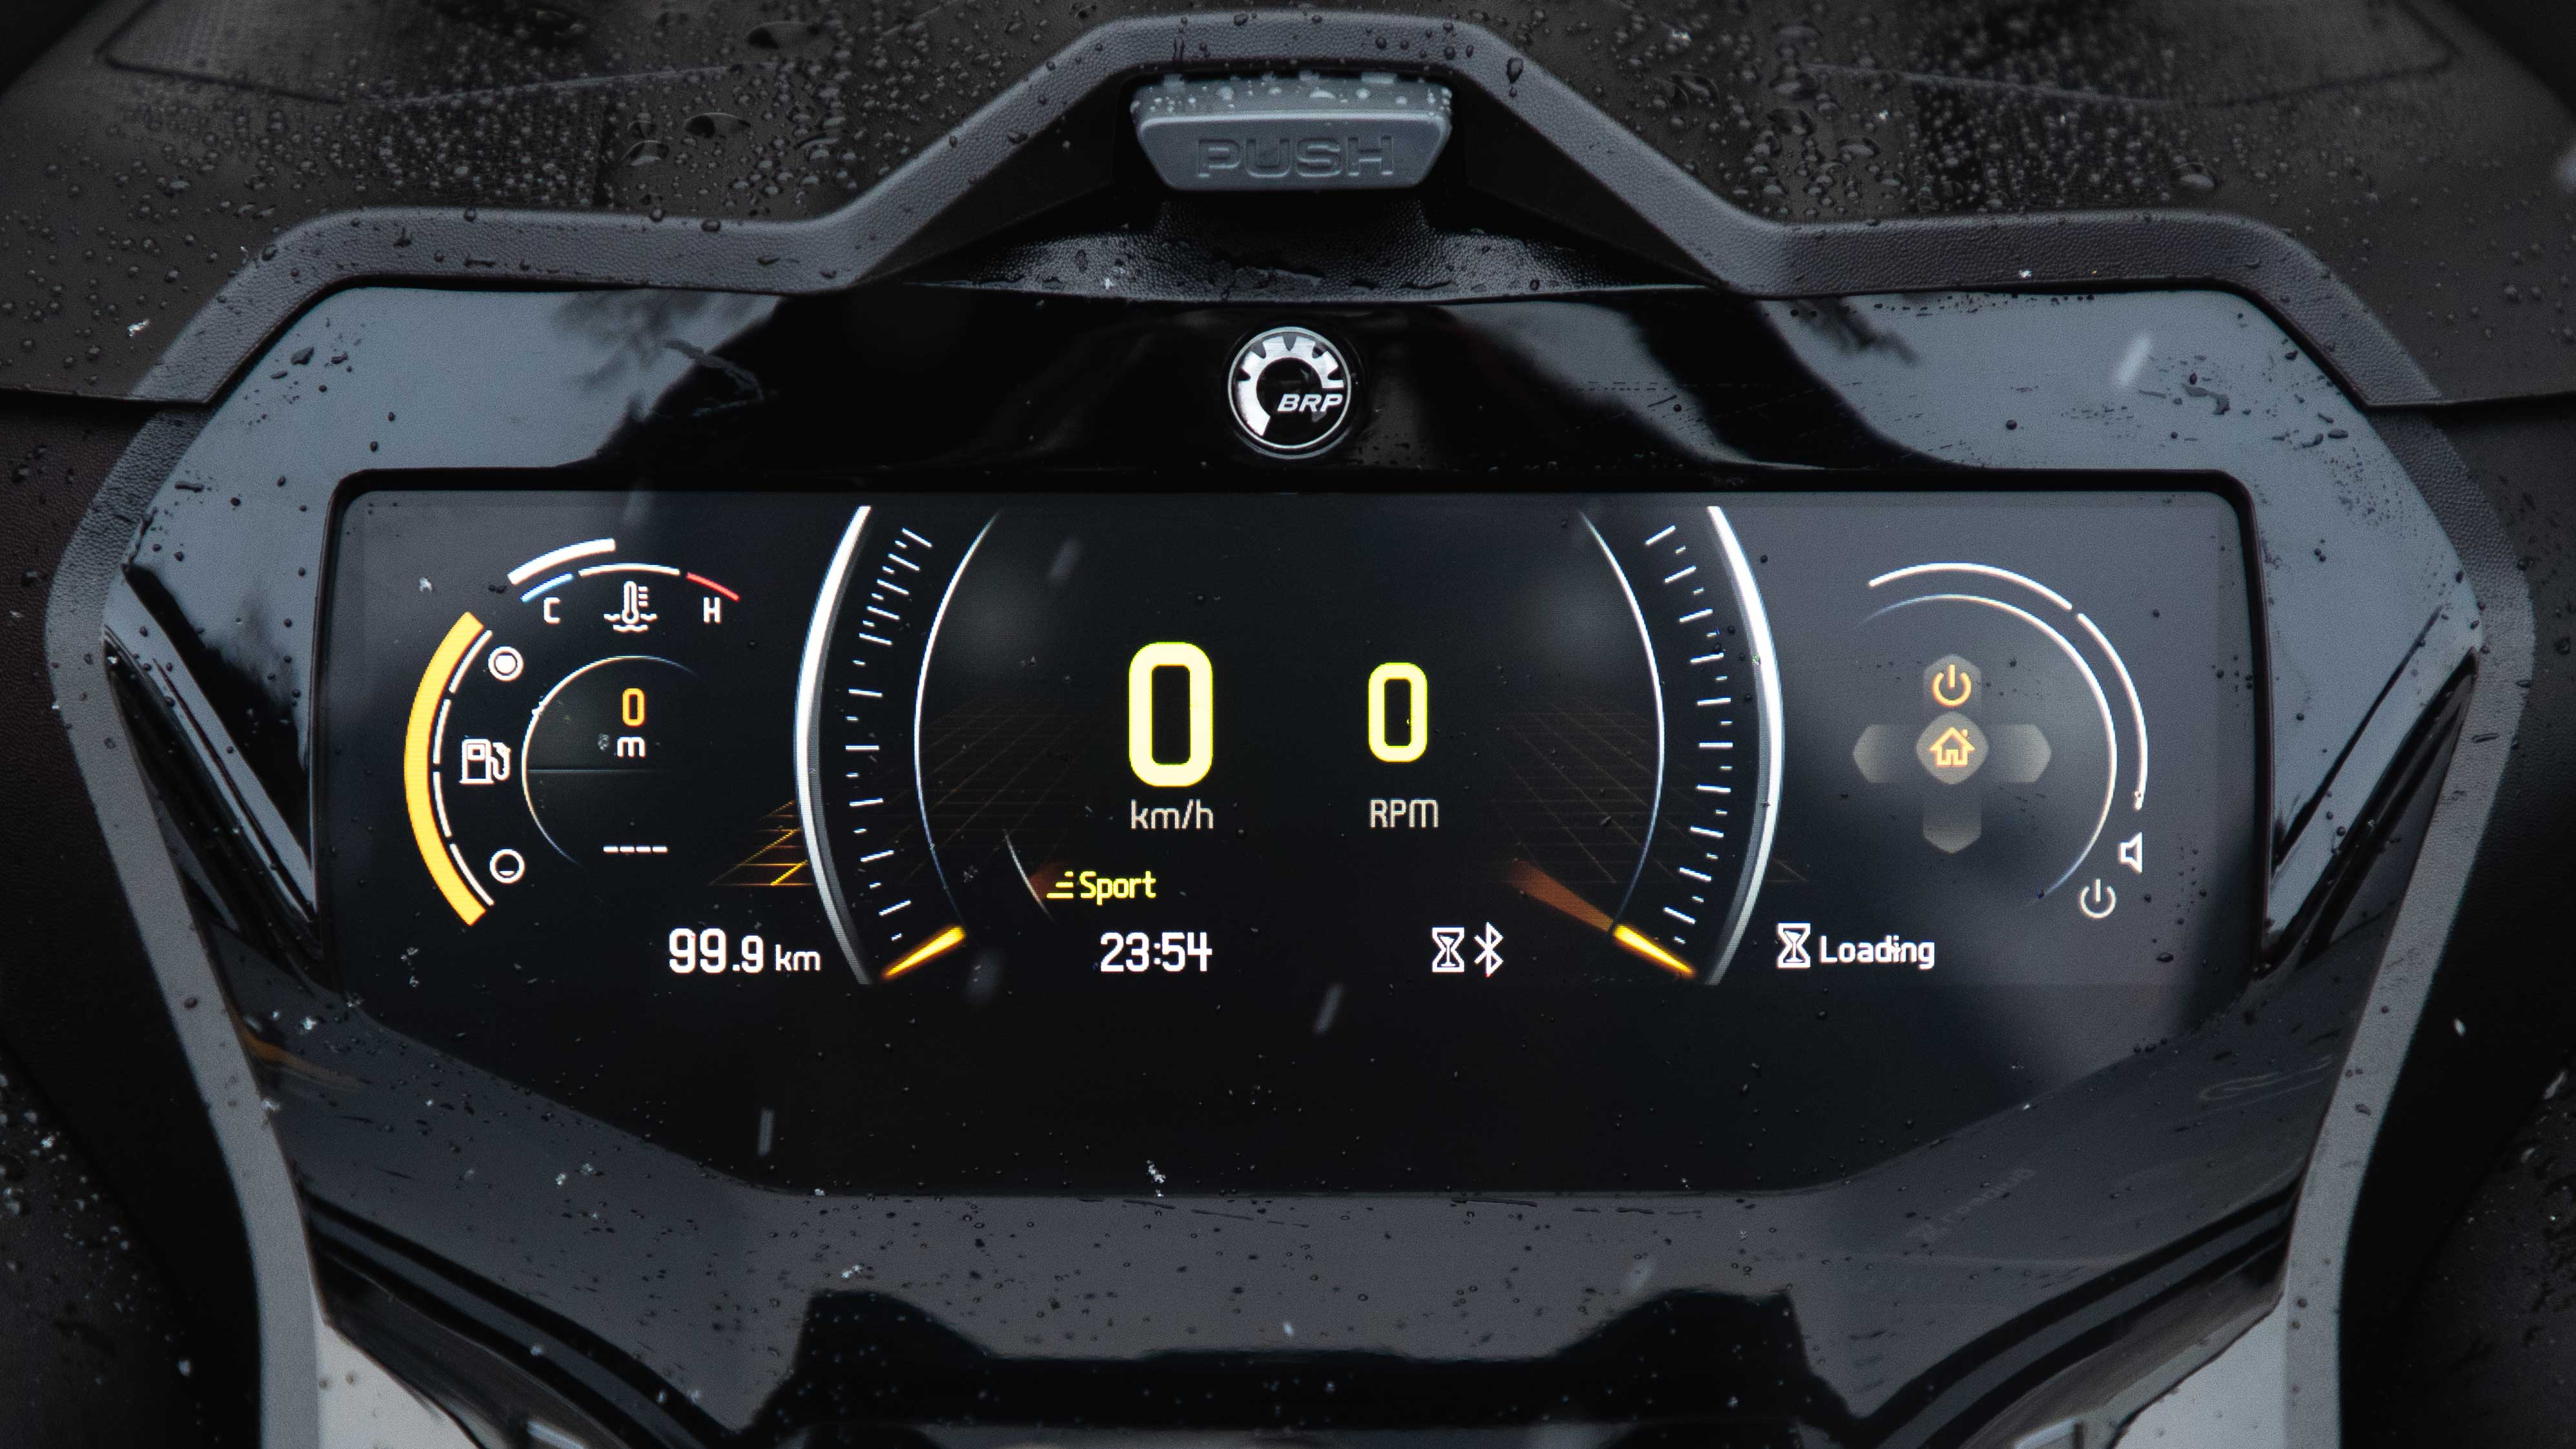 Ski-Doo full color gauge with GPS